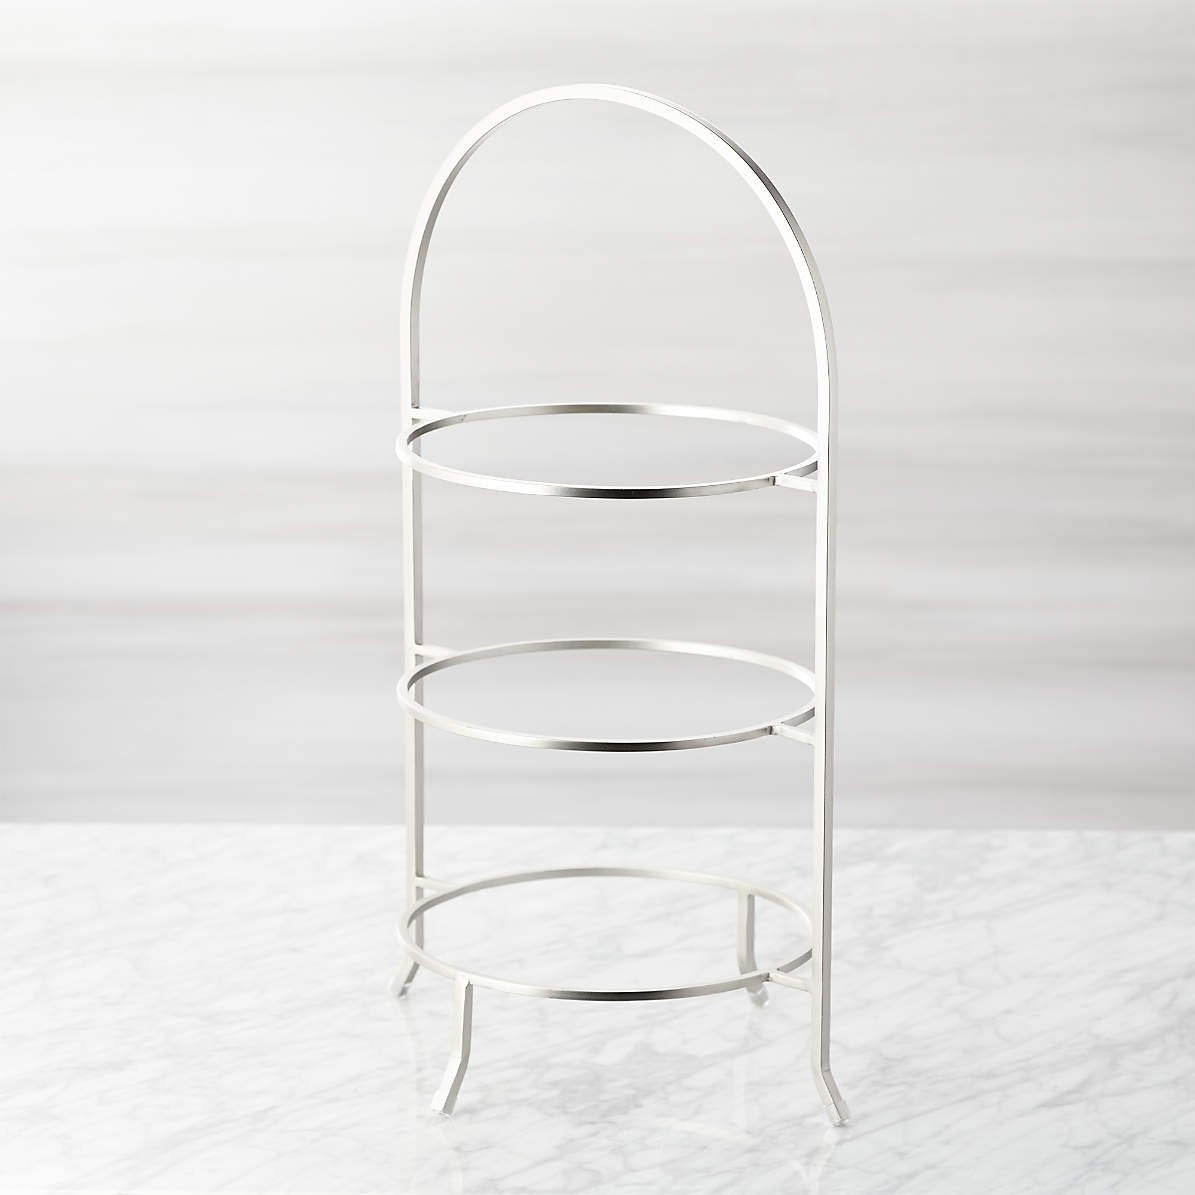 3 Tier High Tea Stainless Steel Stand